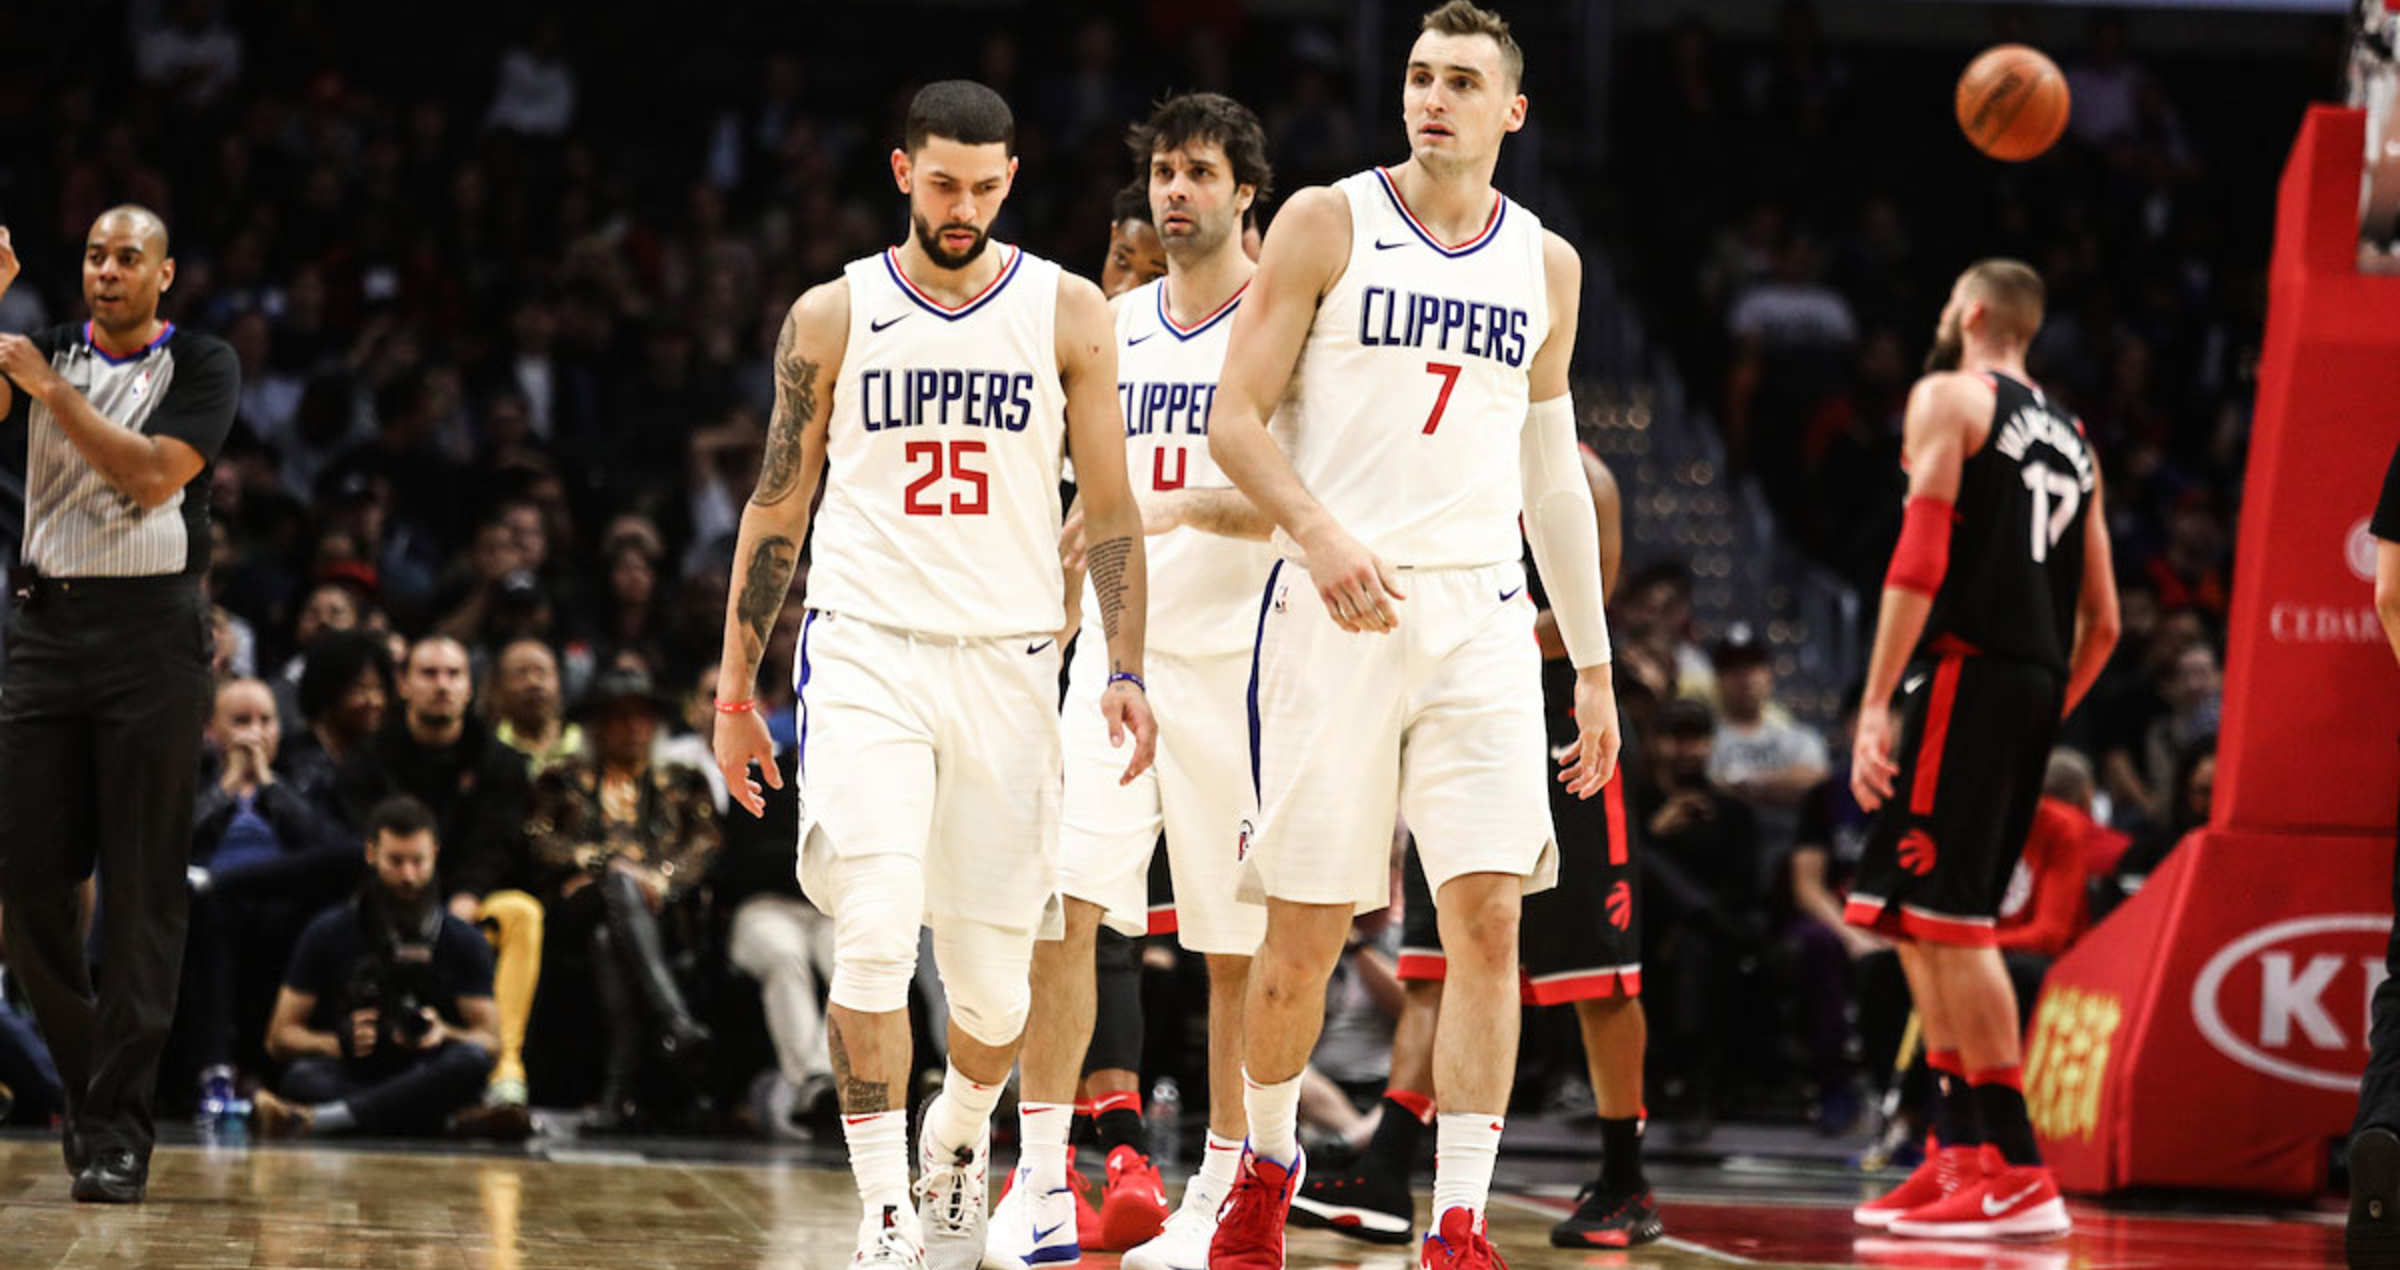 Game Preview: Clippers Look to Extend Winning Streak to 3 vs. Magic